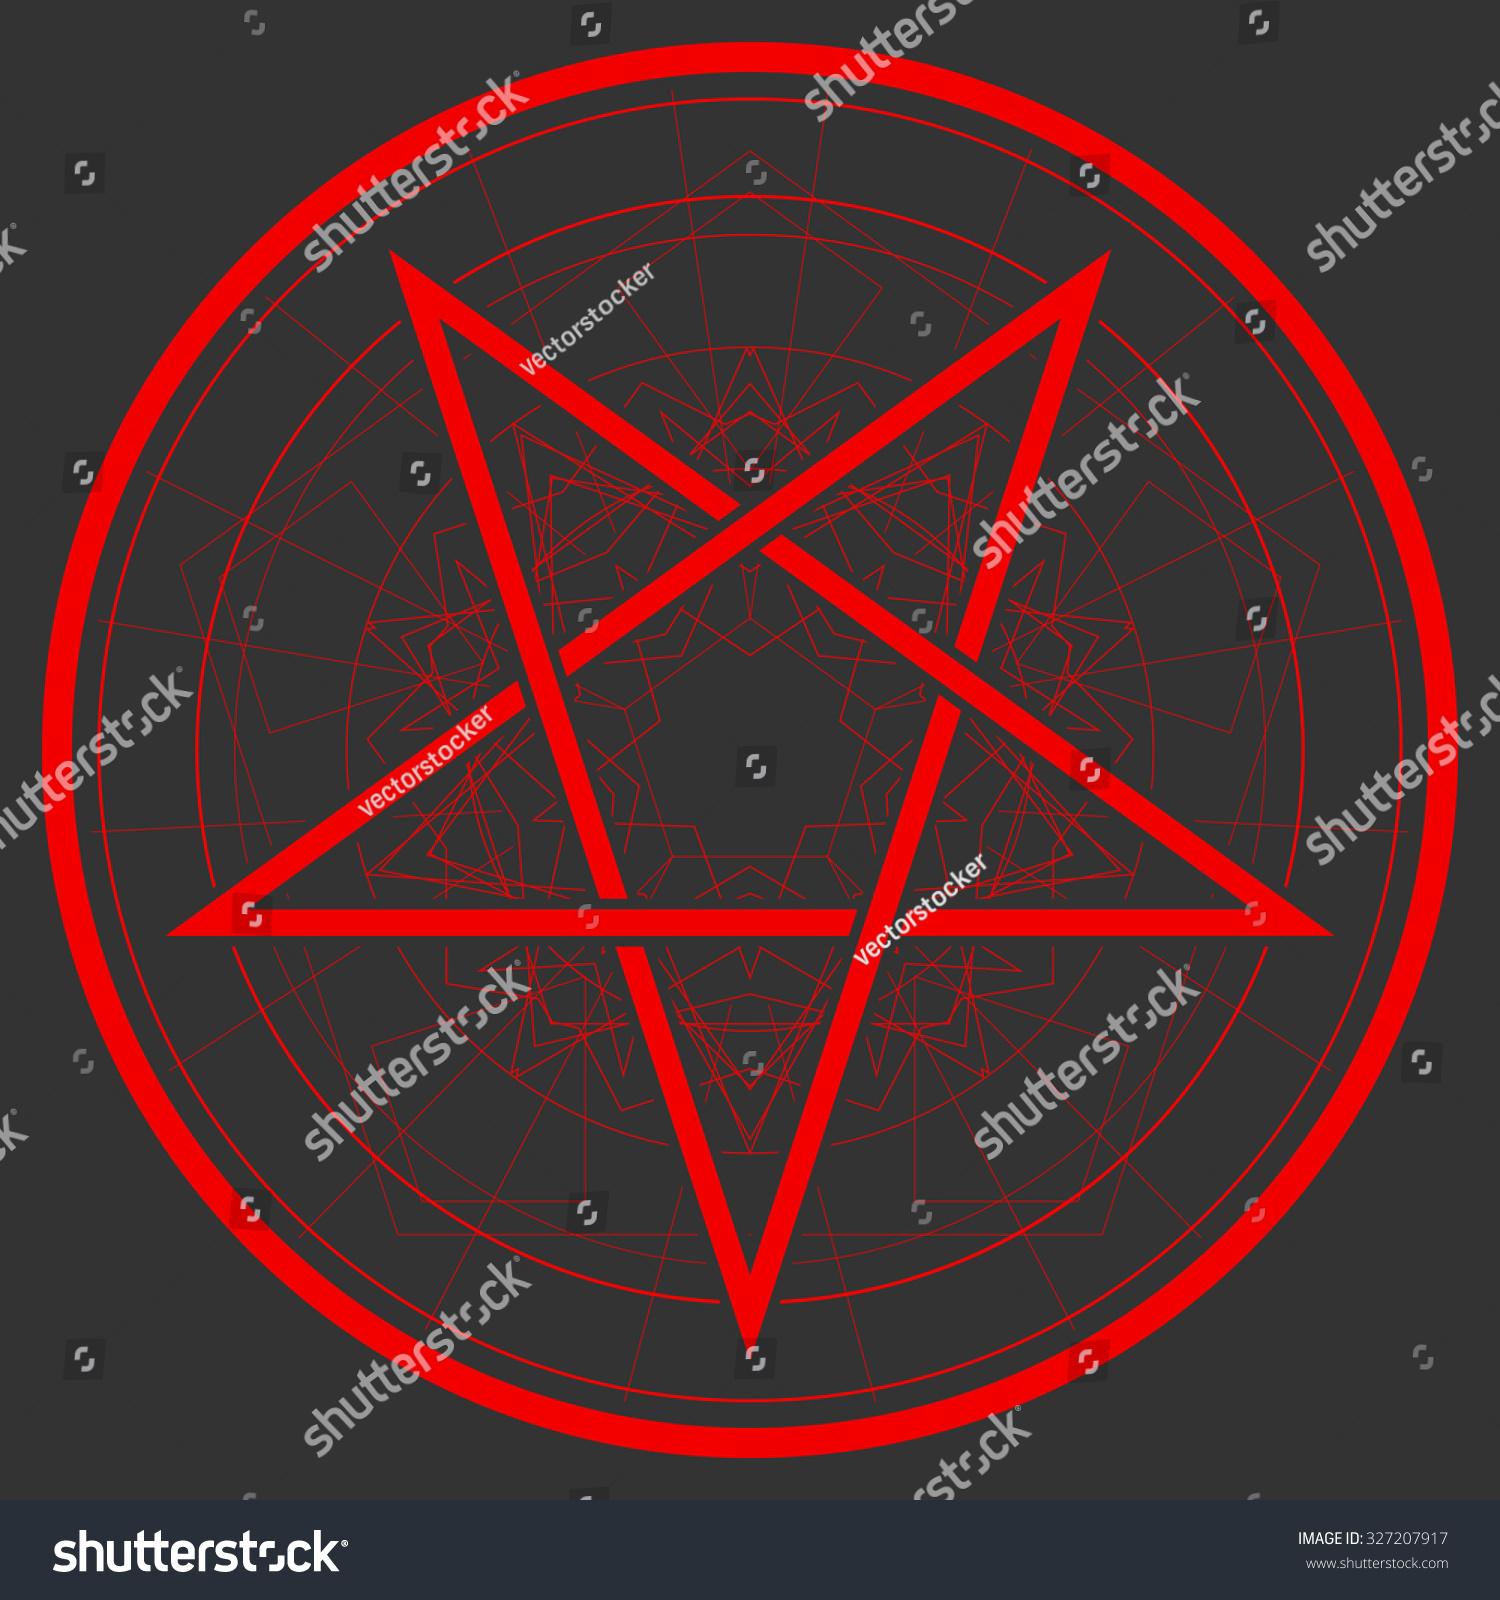 Baphomet star reversed pentagram satanic sign stock vector 327207917 baphomet star reversed pentagram satanic sign gothic style buycottarizona Image collections